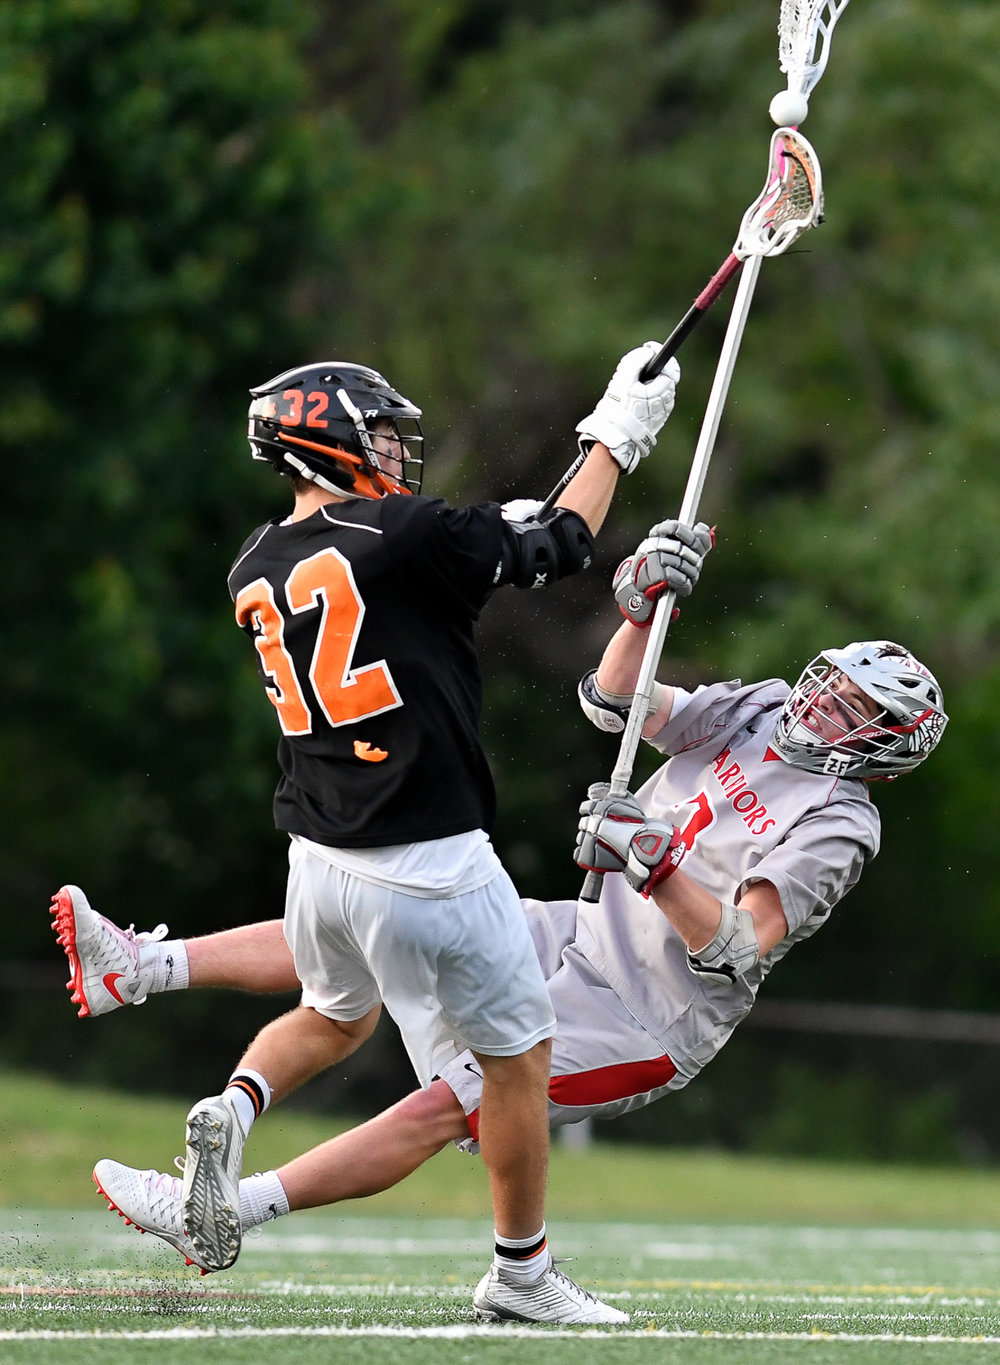 Ryan Fitzpatrick of Wakefield gets checked by Tom Adams of Beverly during their Division 2 North championship game loss, 7-6, at Concord Carlisle High School, Saturday, June 10, 2017. [Wicked Local Staff Photo / David Sokol]